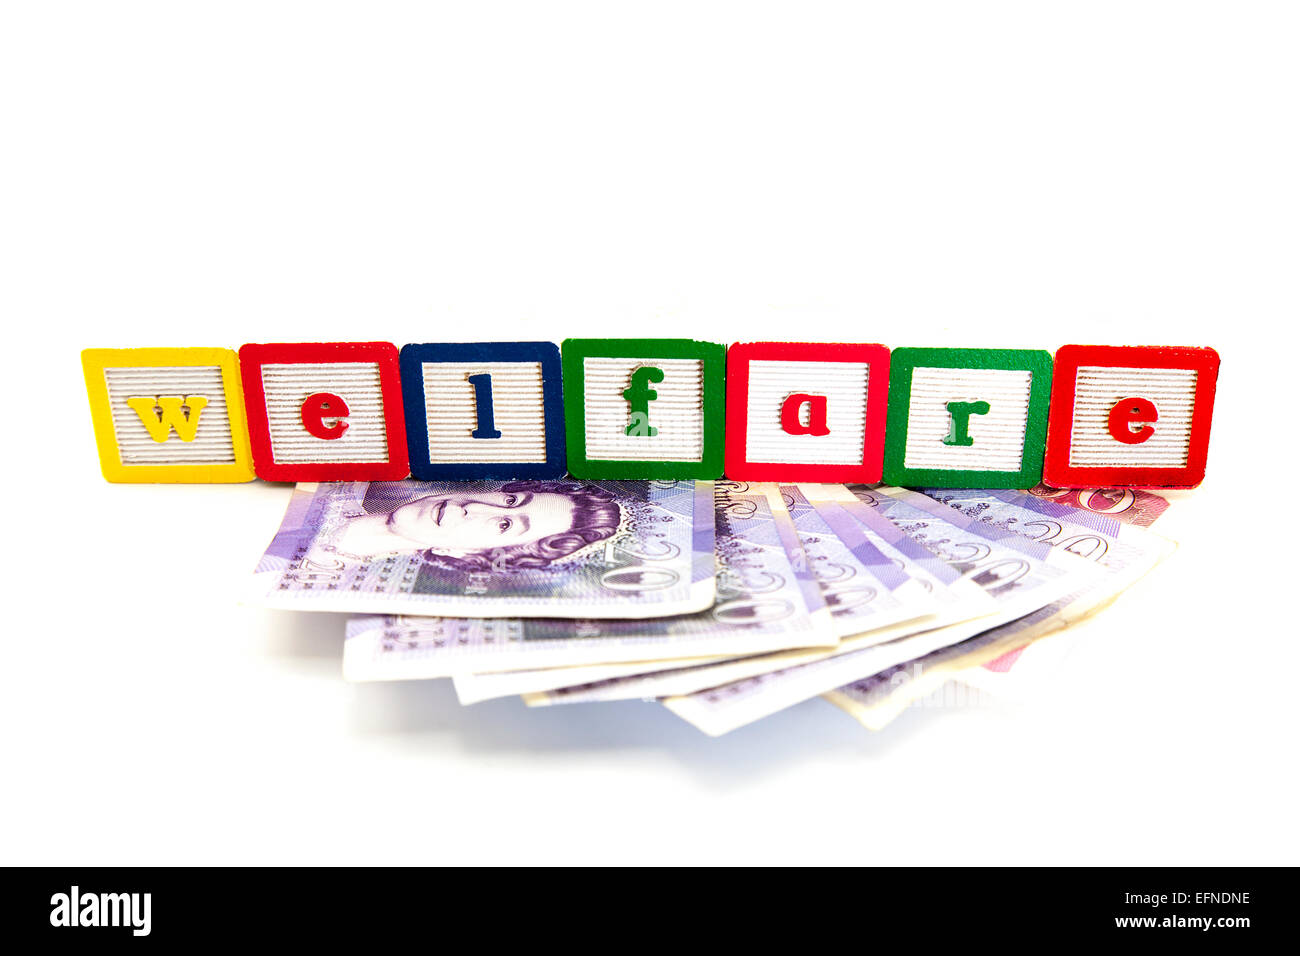 Welfare payment dole money benefits benefit cost costs fund funds government cuts cheat cut out copy space white - Stock Image